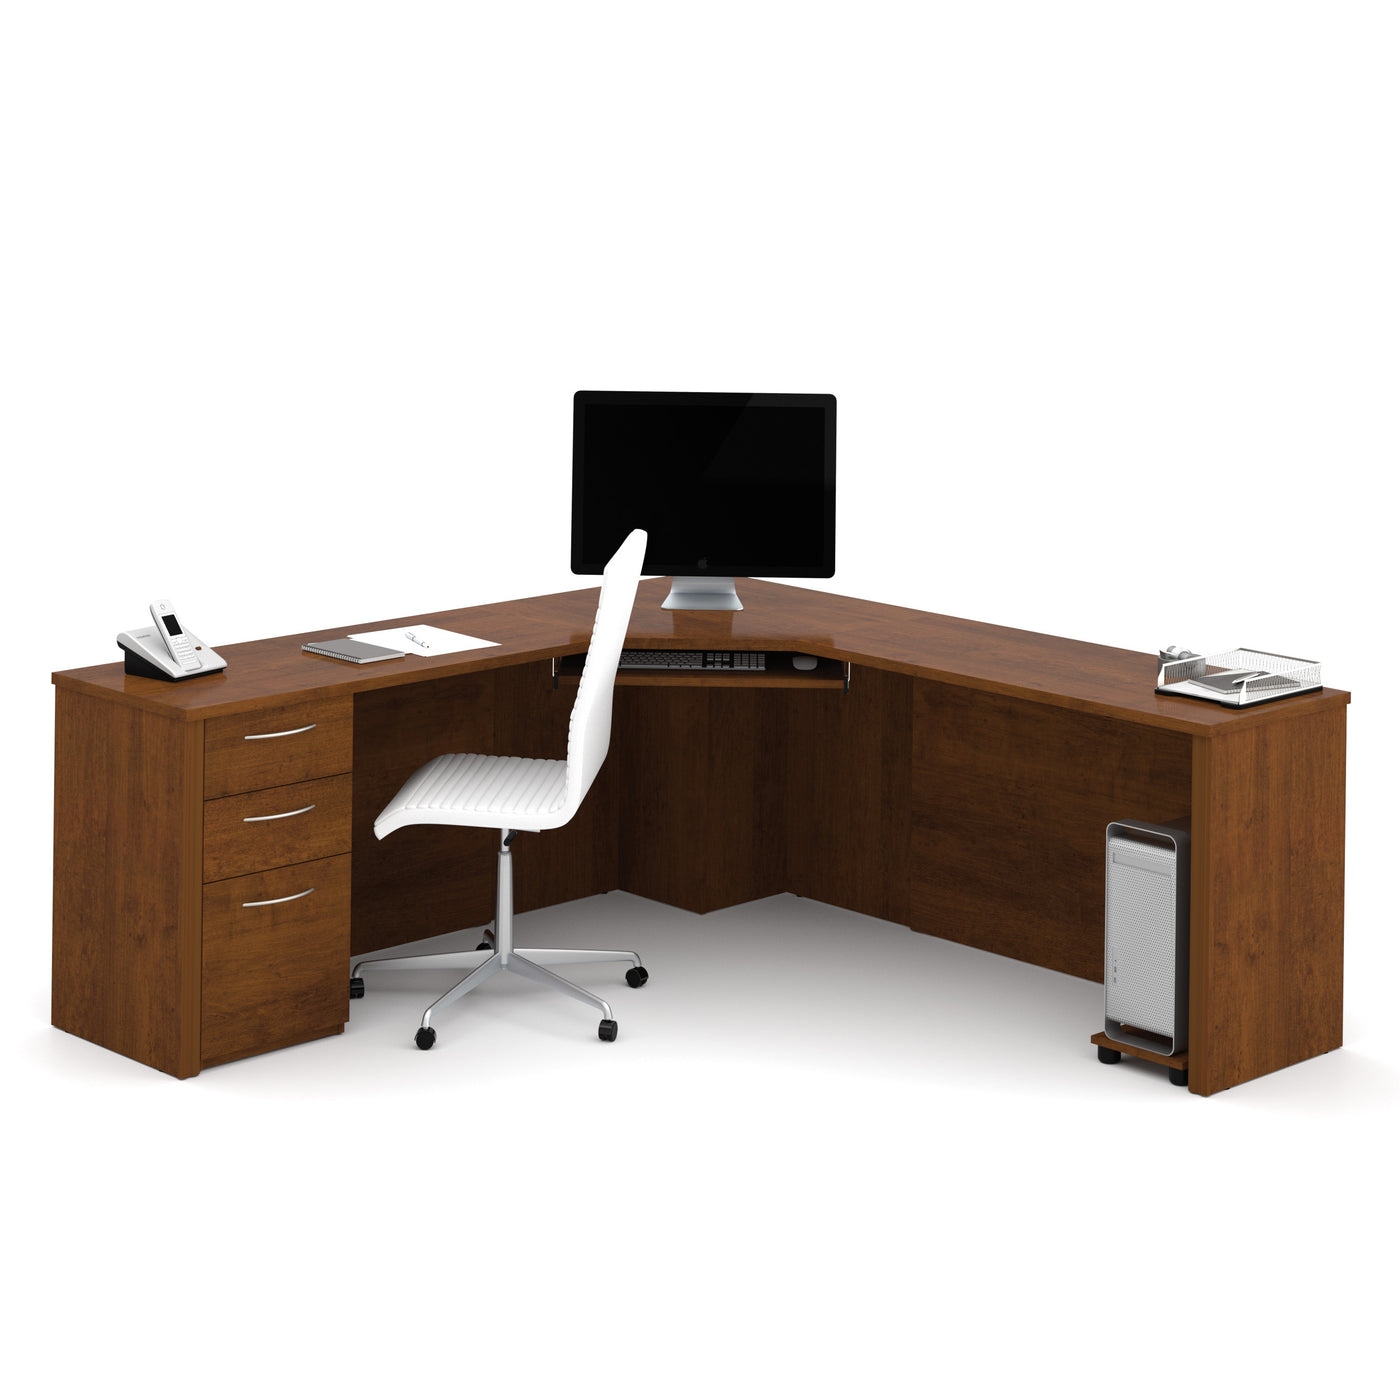 Find Your Perfect Office Desk. Buy Computer Desks, Chairs ...